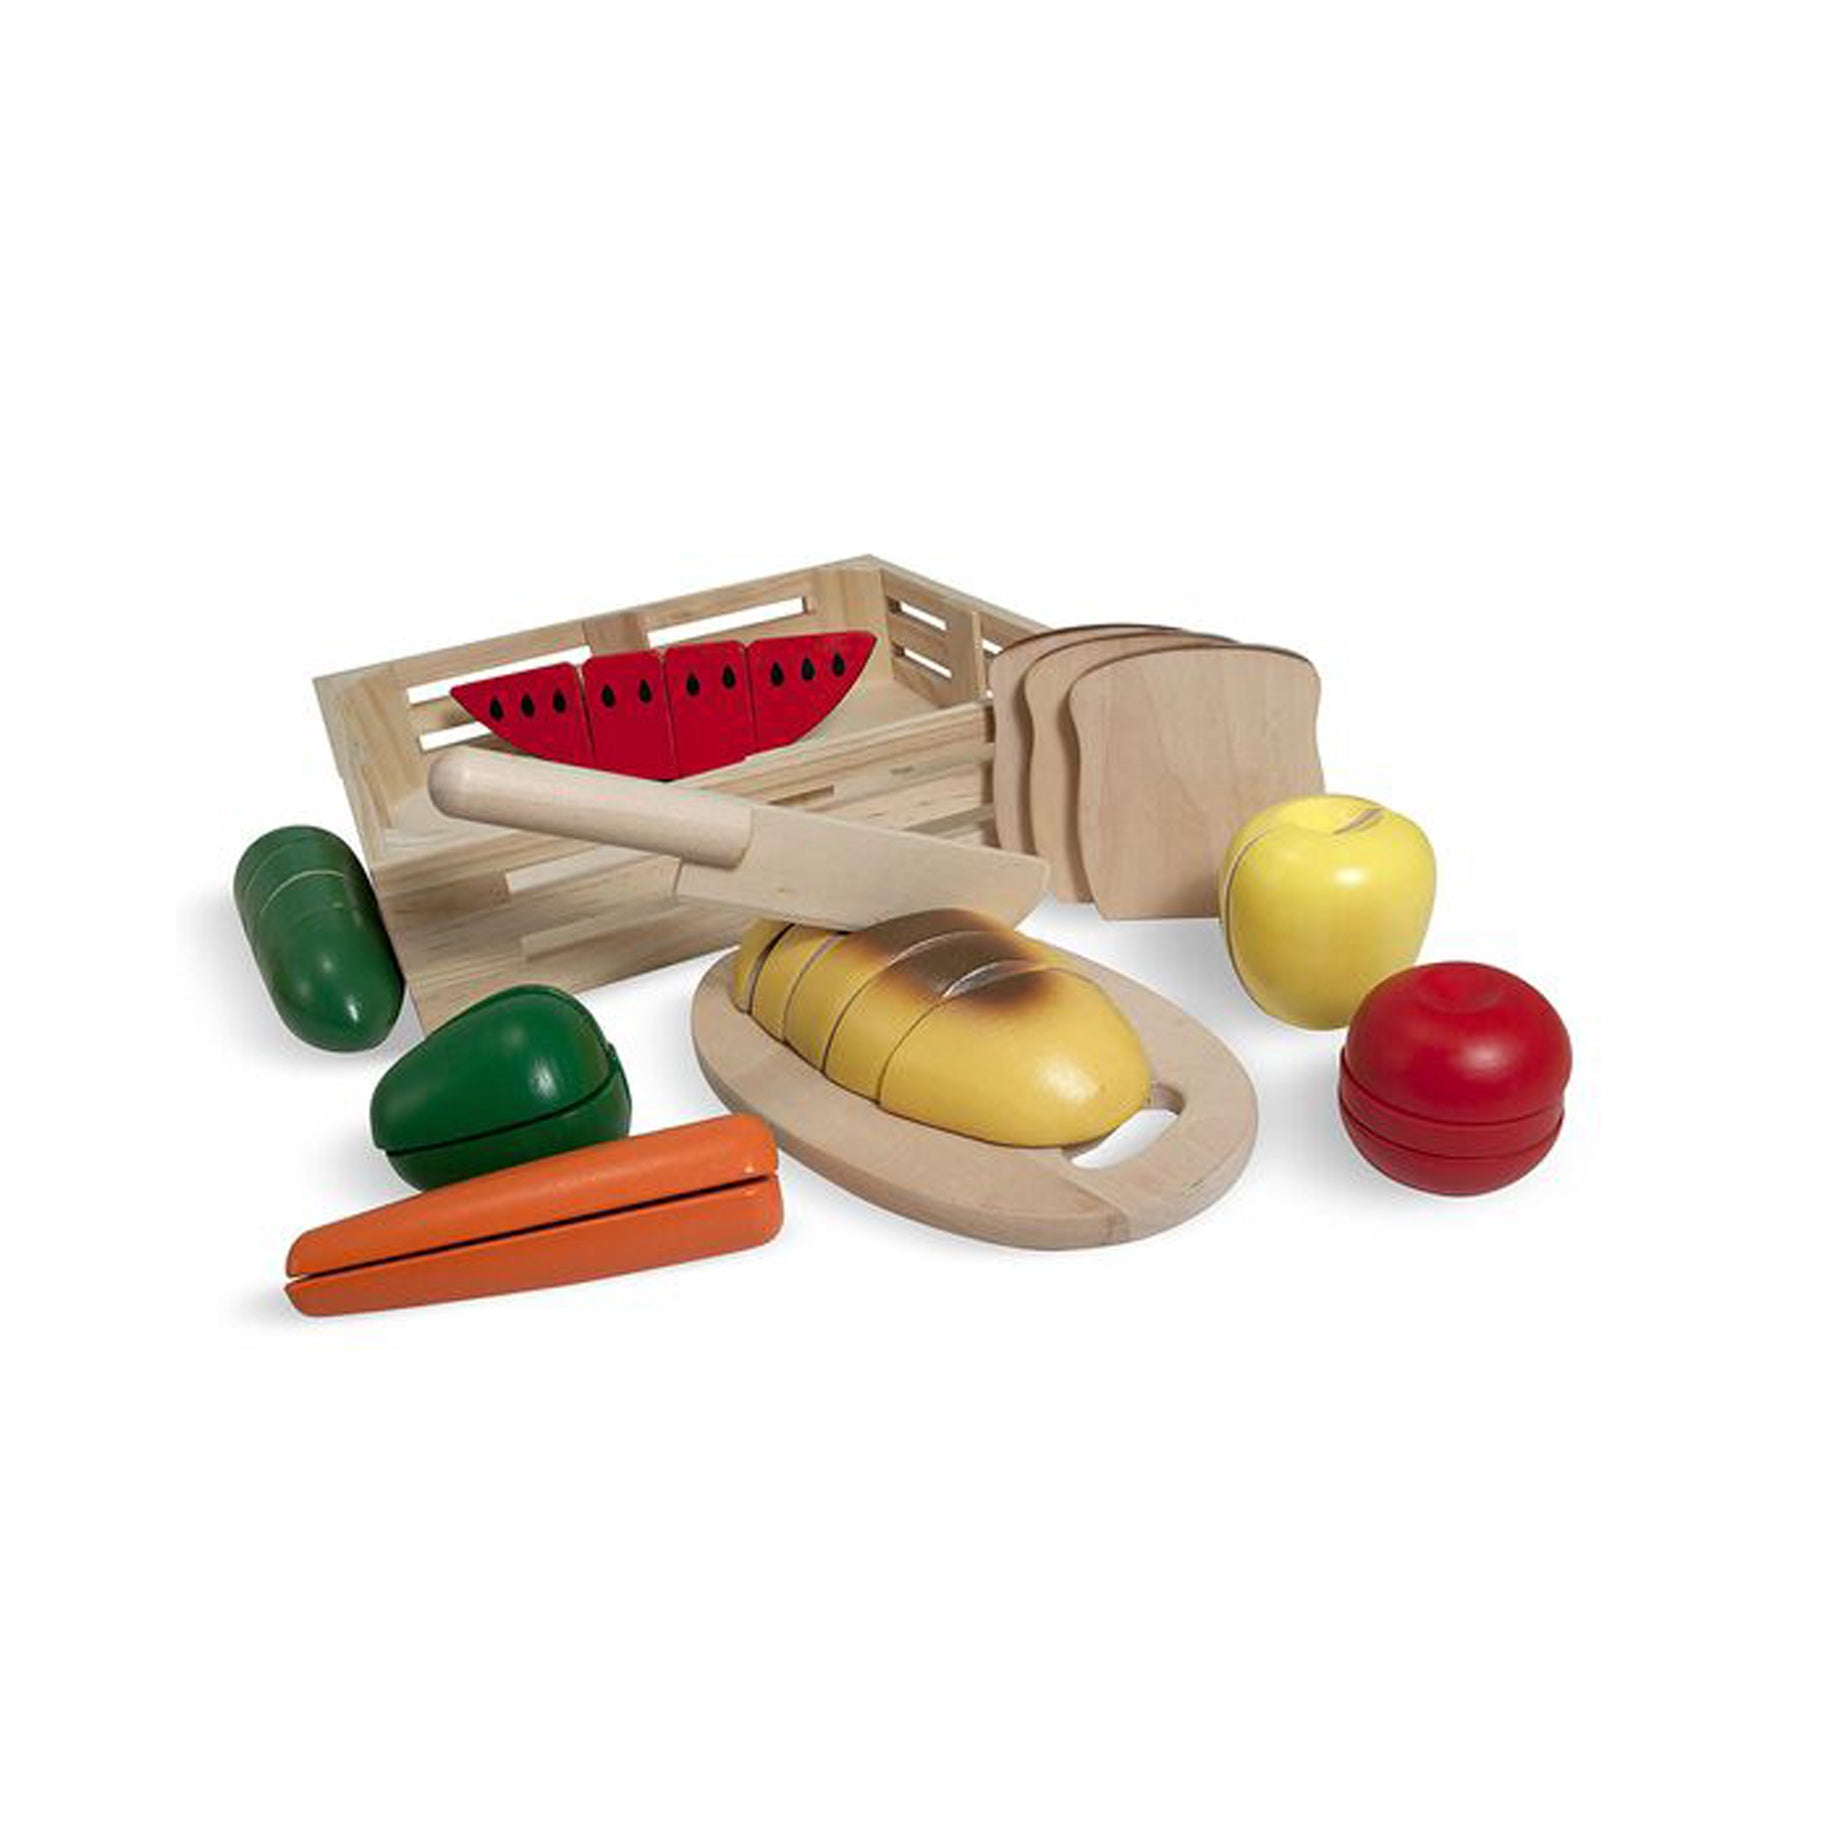 The-Best-Baby-Toys-Option-Melissa-And-Doug-Wooden-Cutting-Food-Set